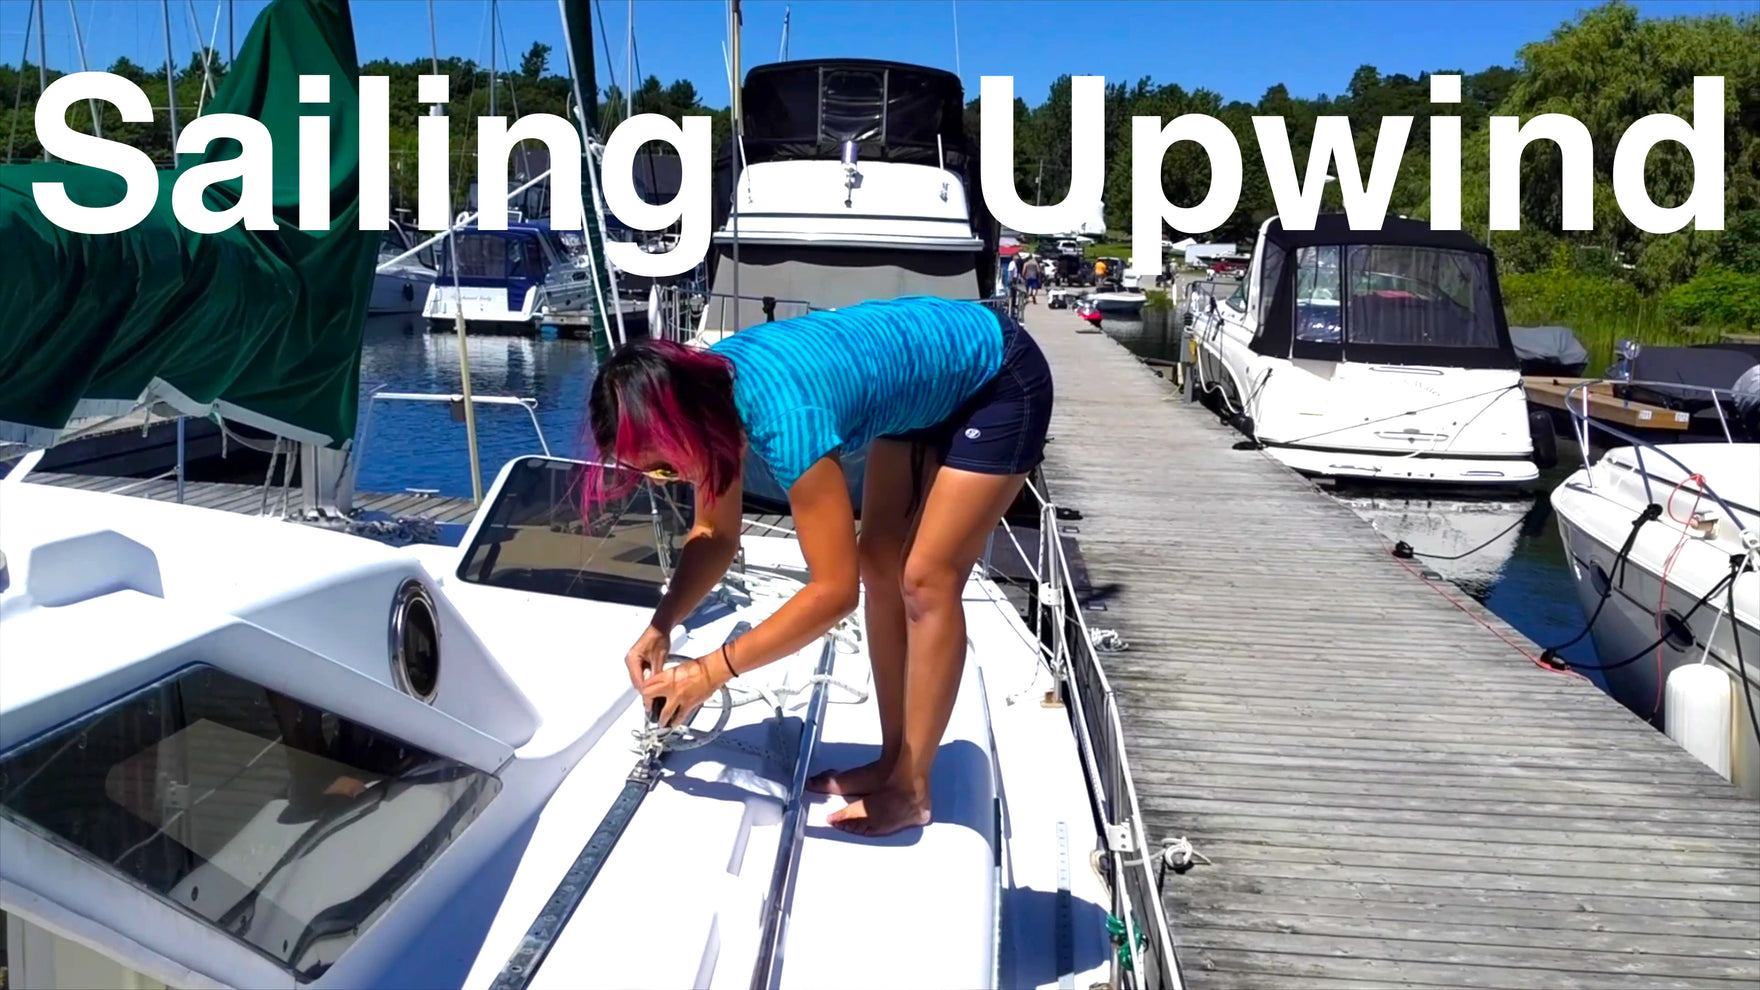 Episode 09 - Learning to Sail Upwind on a Catamaran